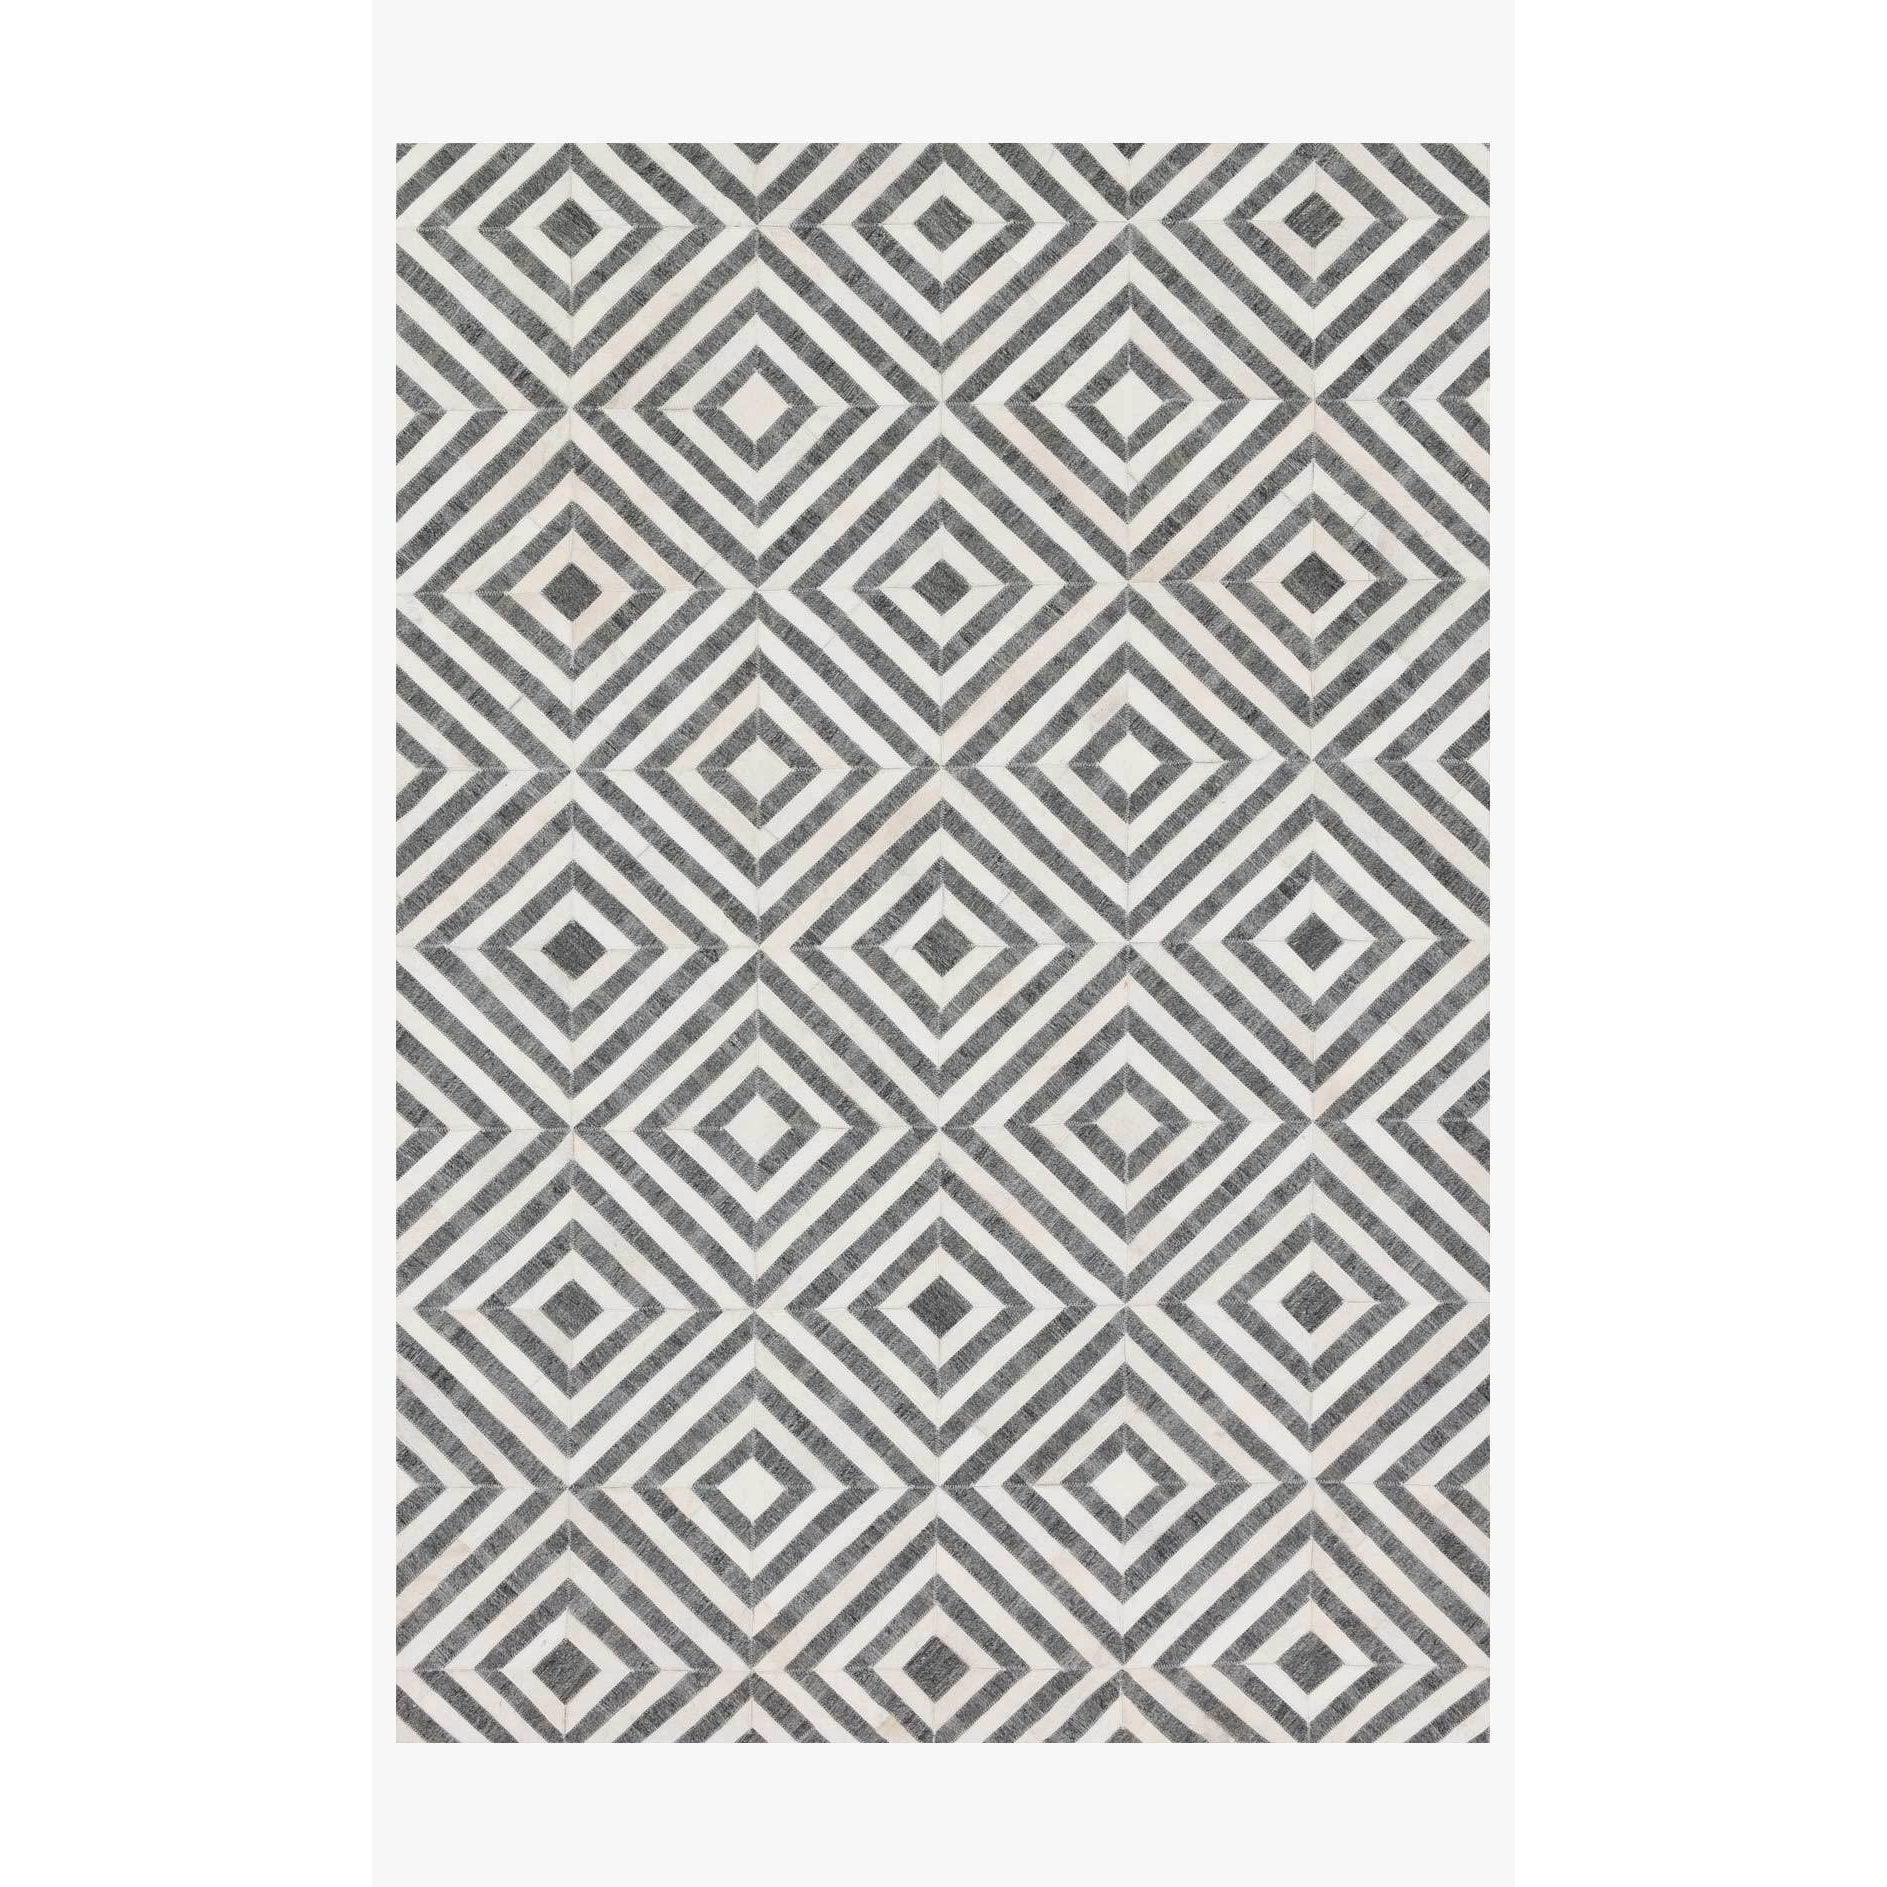 Dorado Rugs by Loloi - DB-03 - Charcoal / Ivory-Loloi Rugs-Blue Hand Home